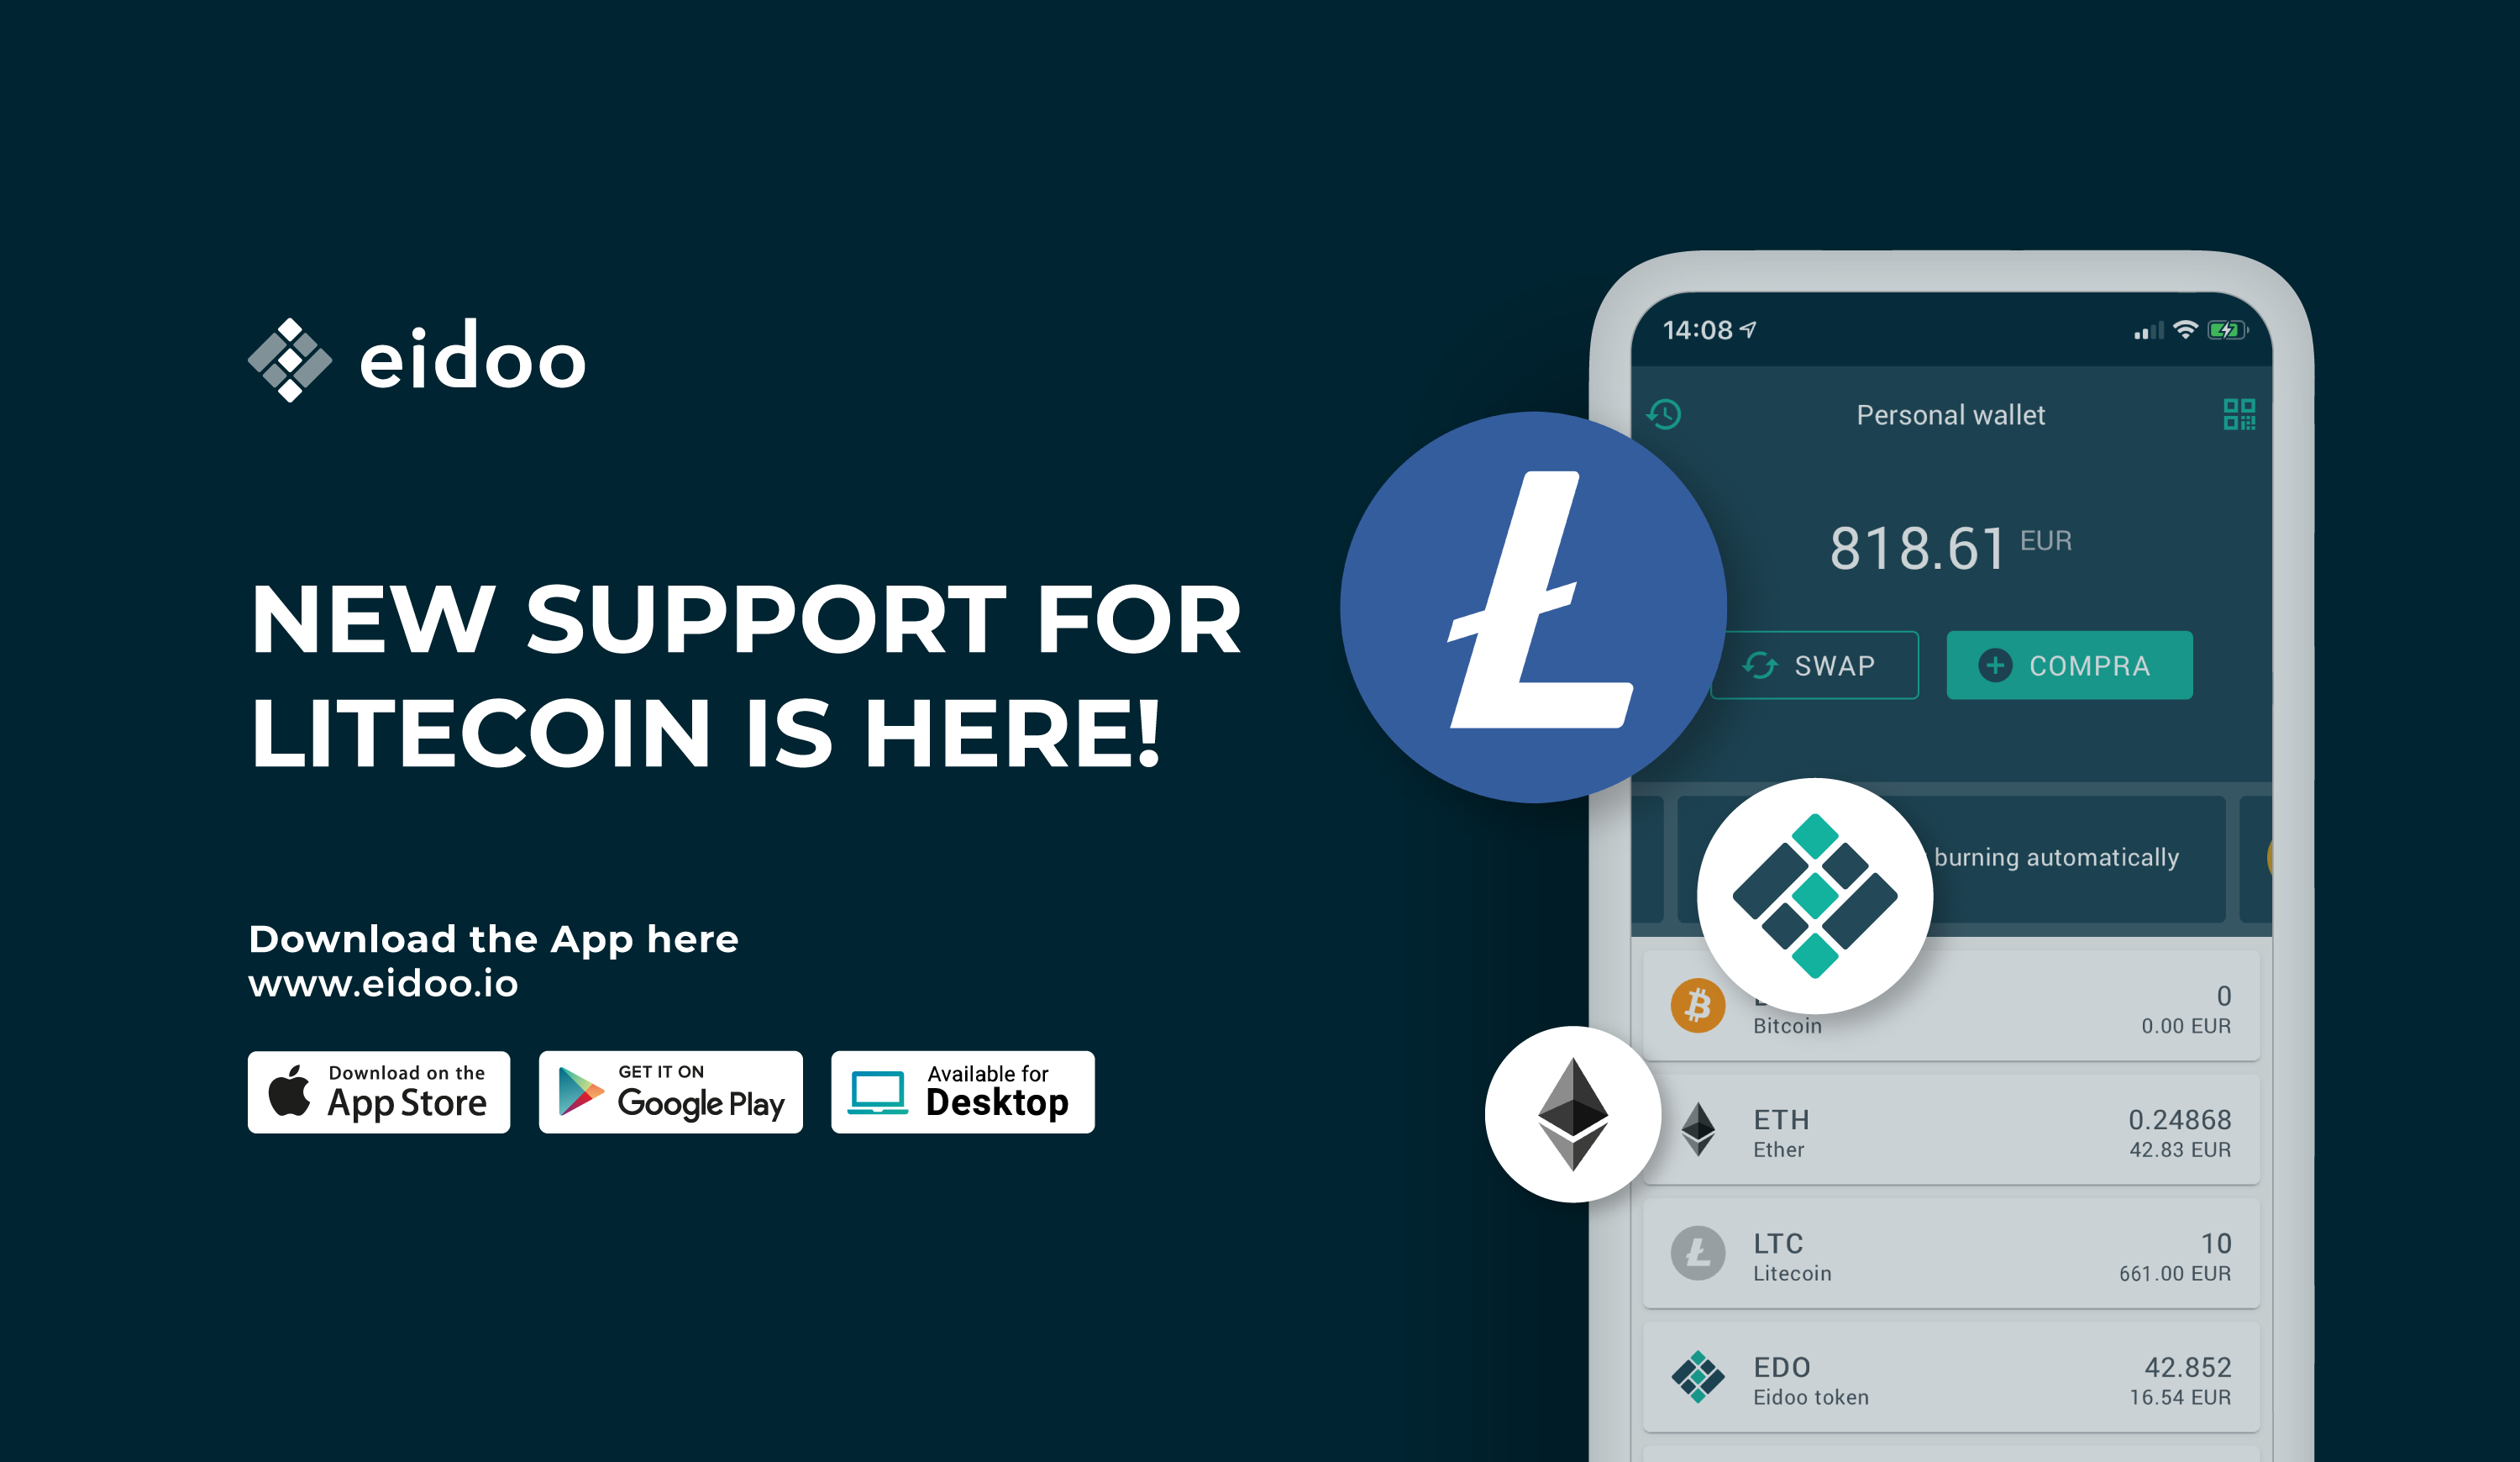 Eidoo: the wallet now supports Litecoin